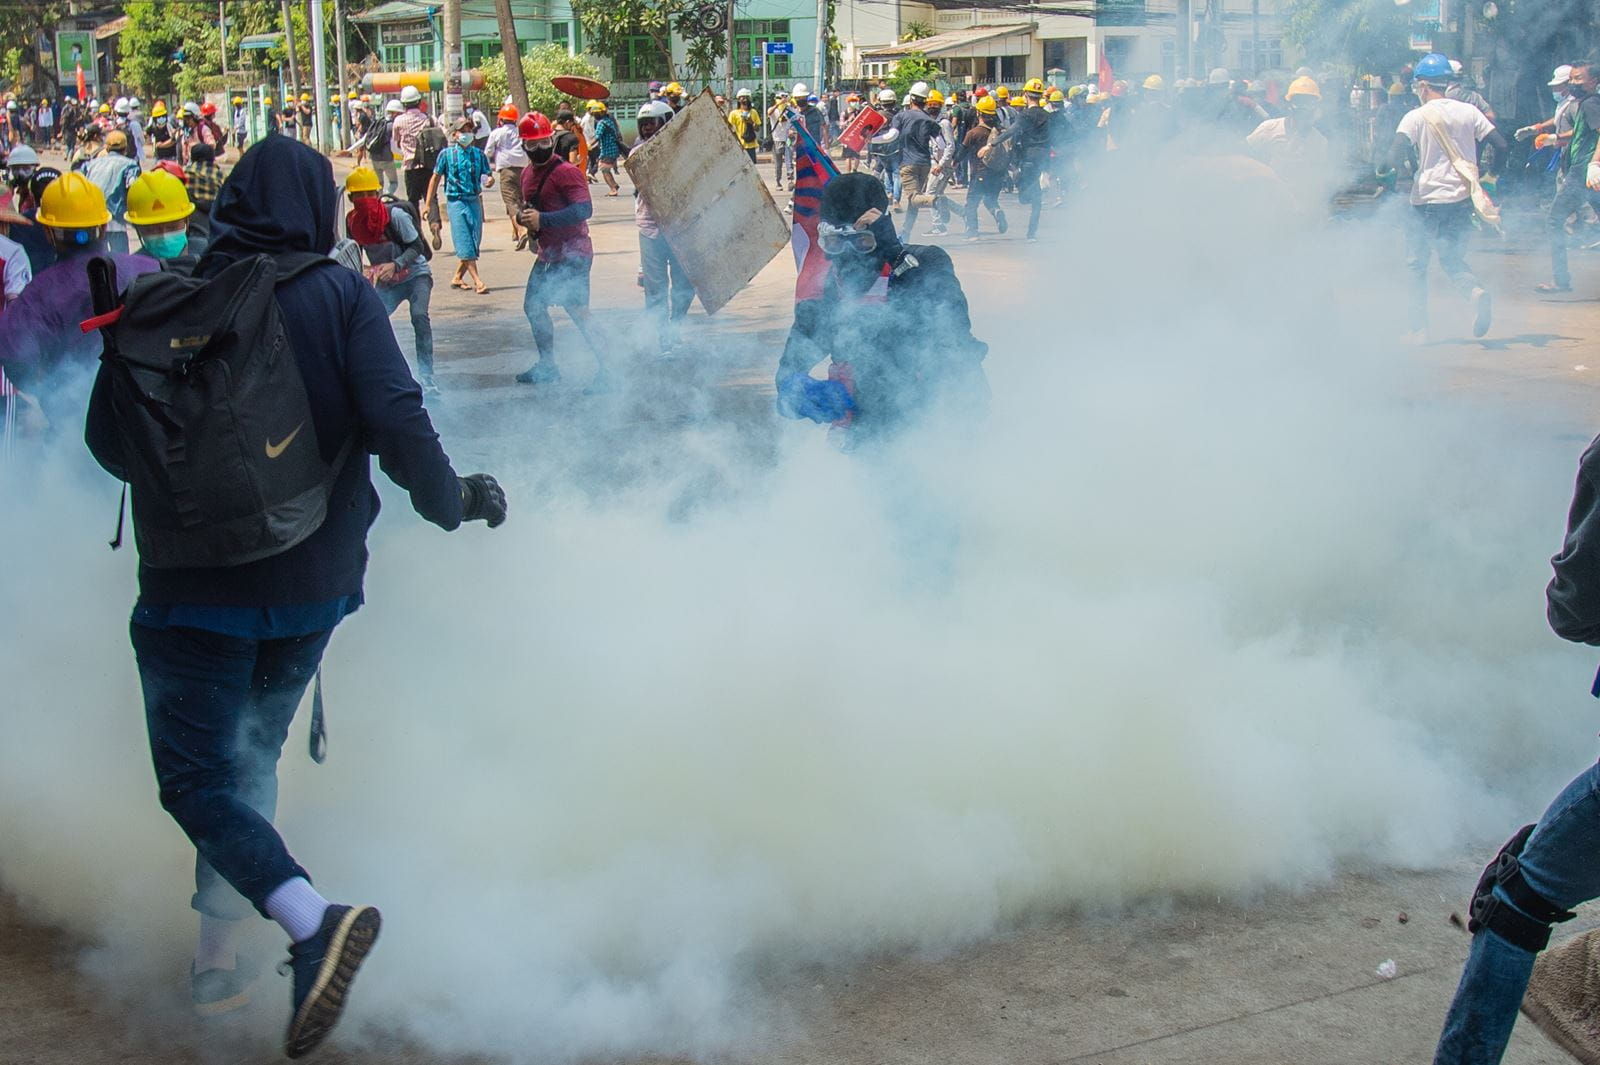 Police crack down on the crowd with tear gas protesters in Yangon, Myanmar (credit: Maung Nyan/Shutterstock)